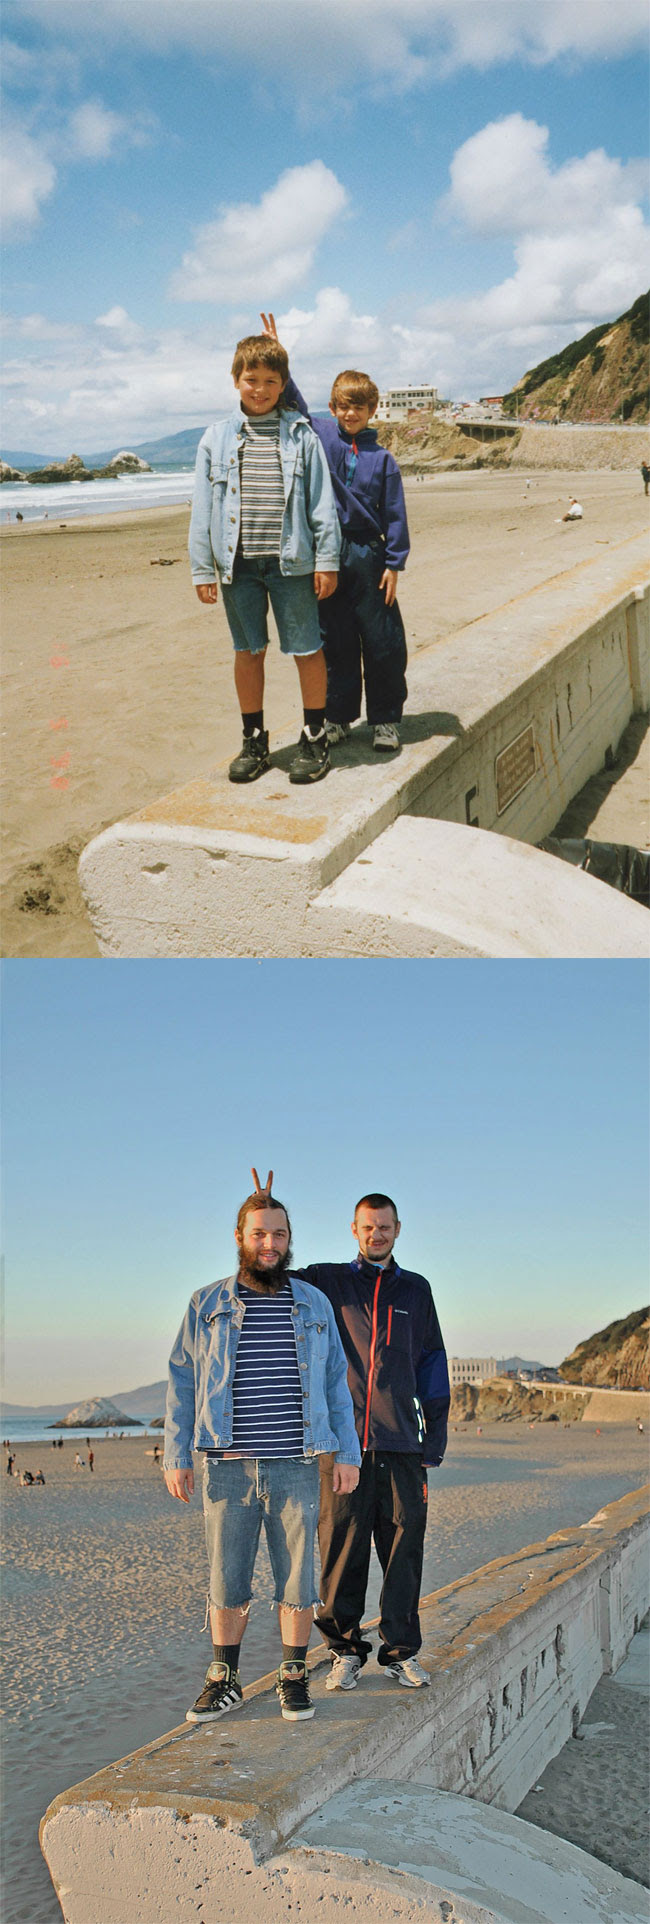 89 Amazing 12 page Calendar of Recreated Family Photos